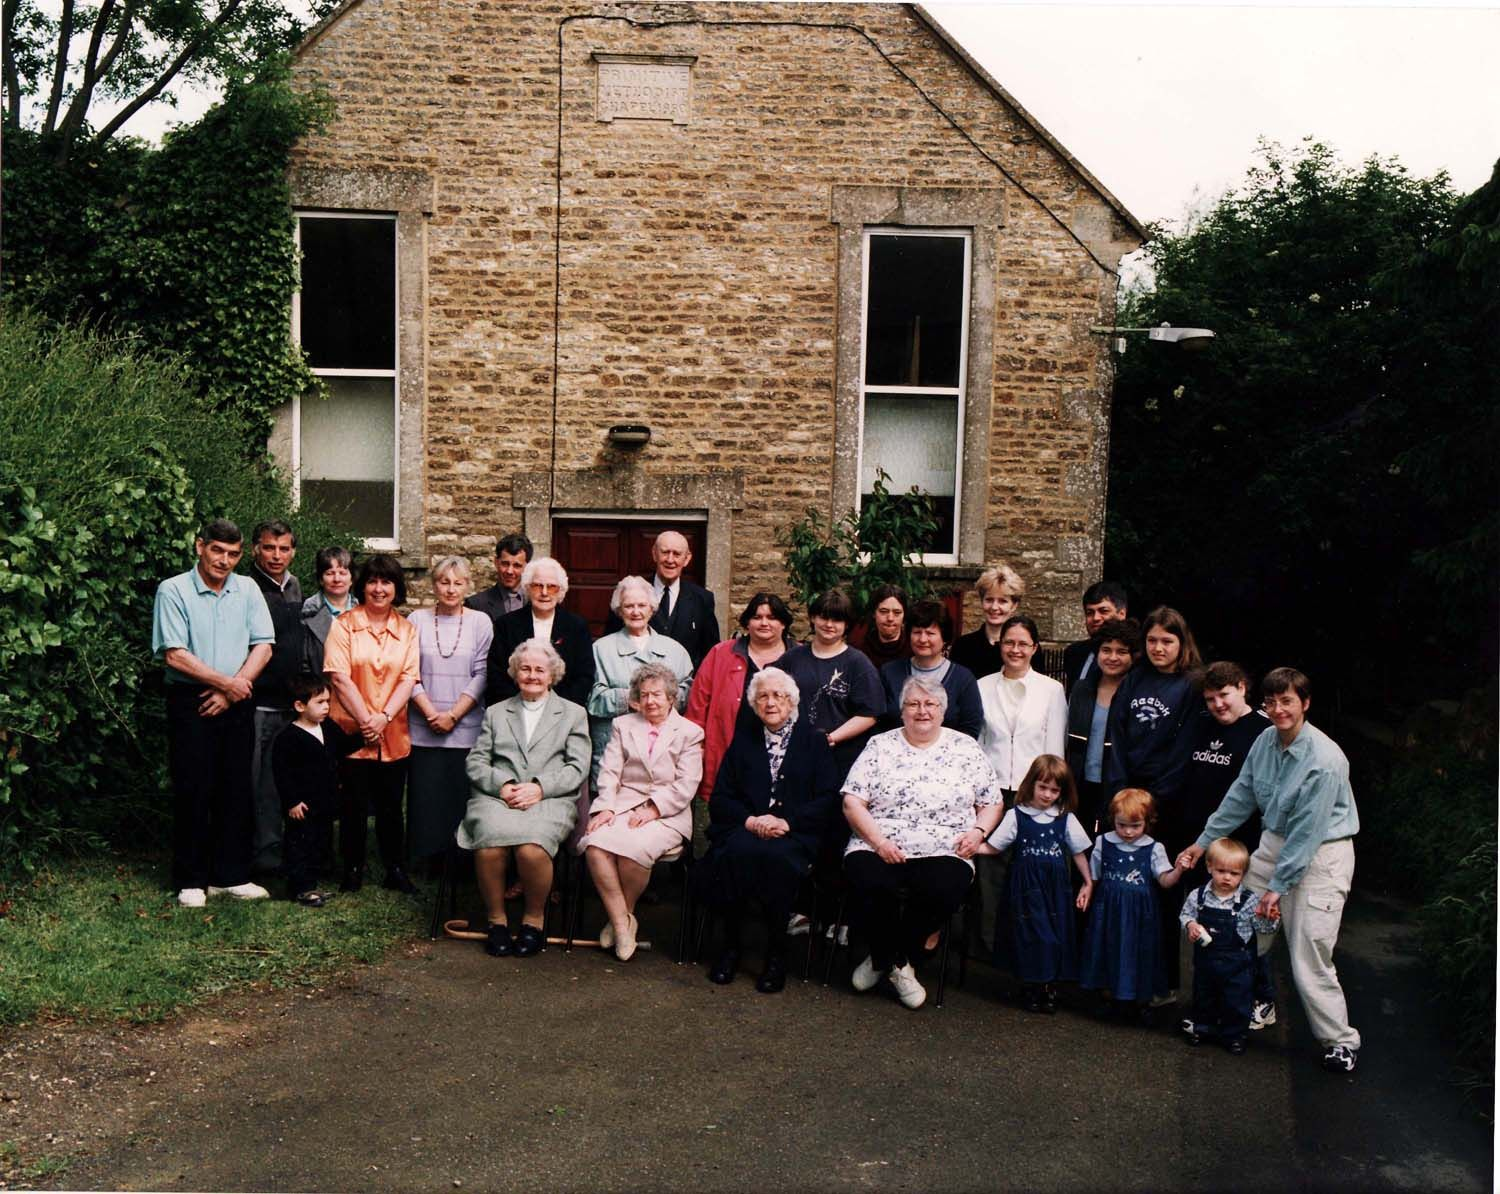 2000 Millennium photograph, (left to right, front row) Mrs Hilary Bassett, Mrs Ethel Evans, Mrs Brown, Deanna Gardner, Emily, Rosie and James Caldwell, Louise Caldwell.